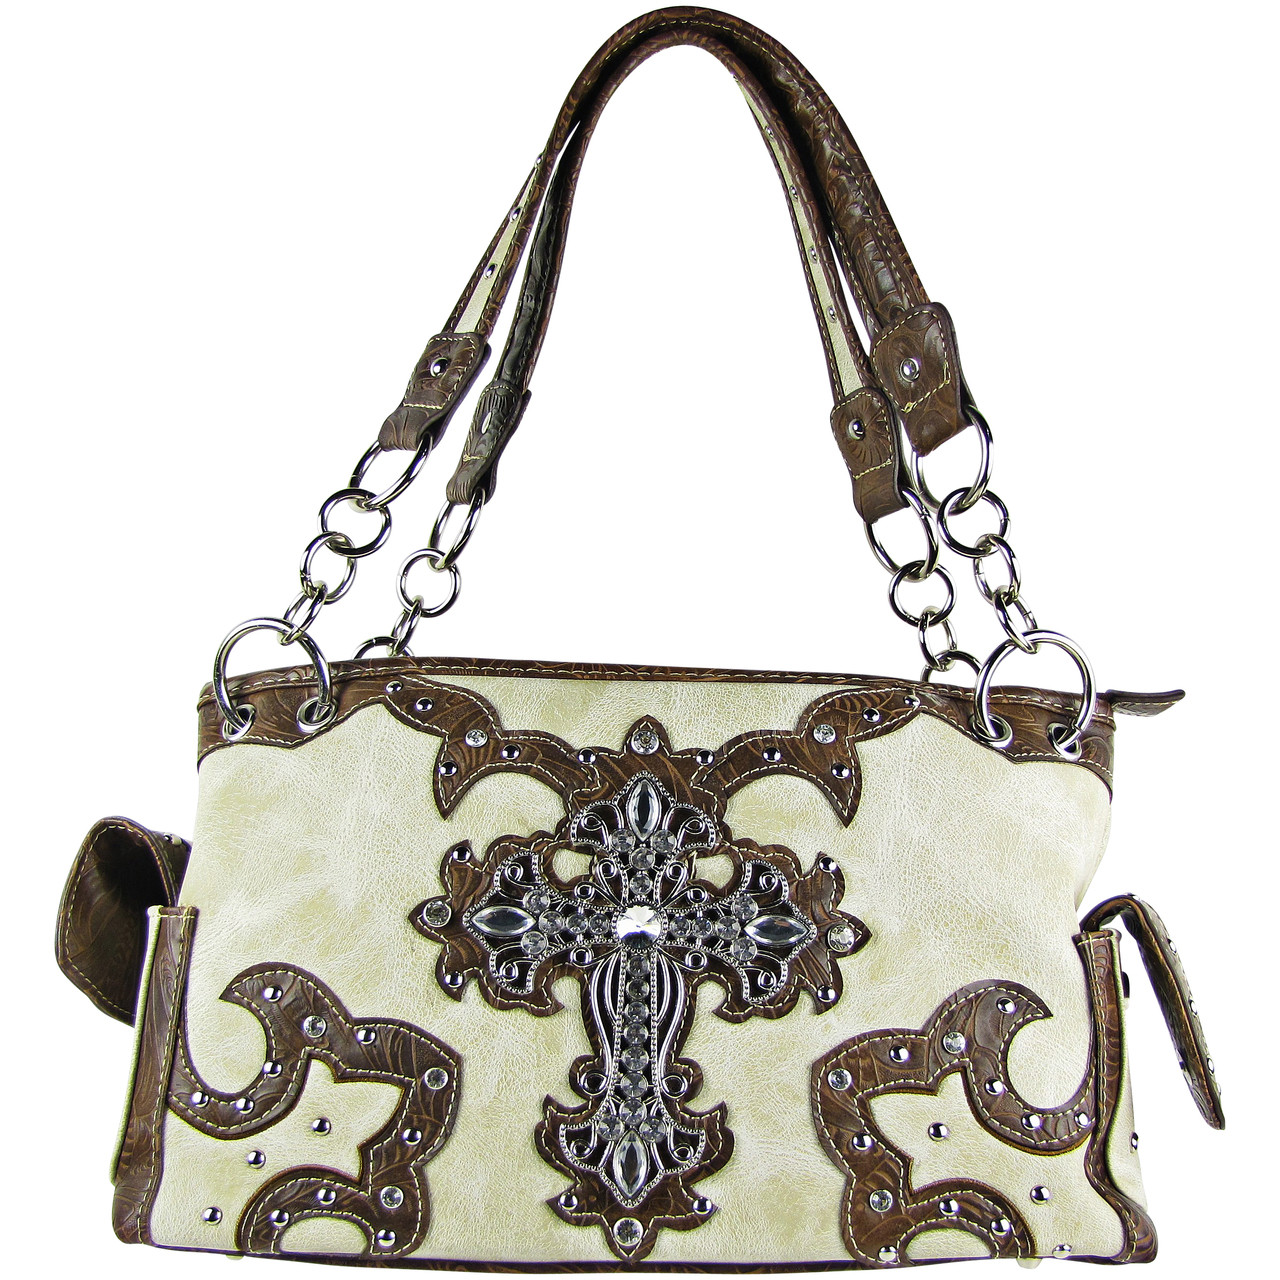 BEIGE WESTERN STUDDED RHINESTONE CROSS DESIGN LOOK SHOULDER HANDBAG HB1-KW15RBEI